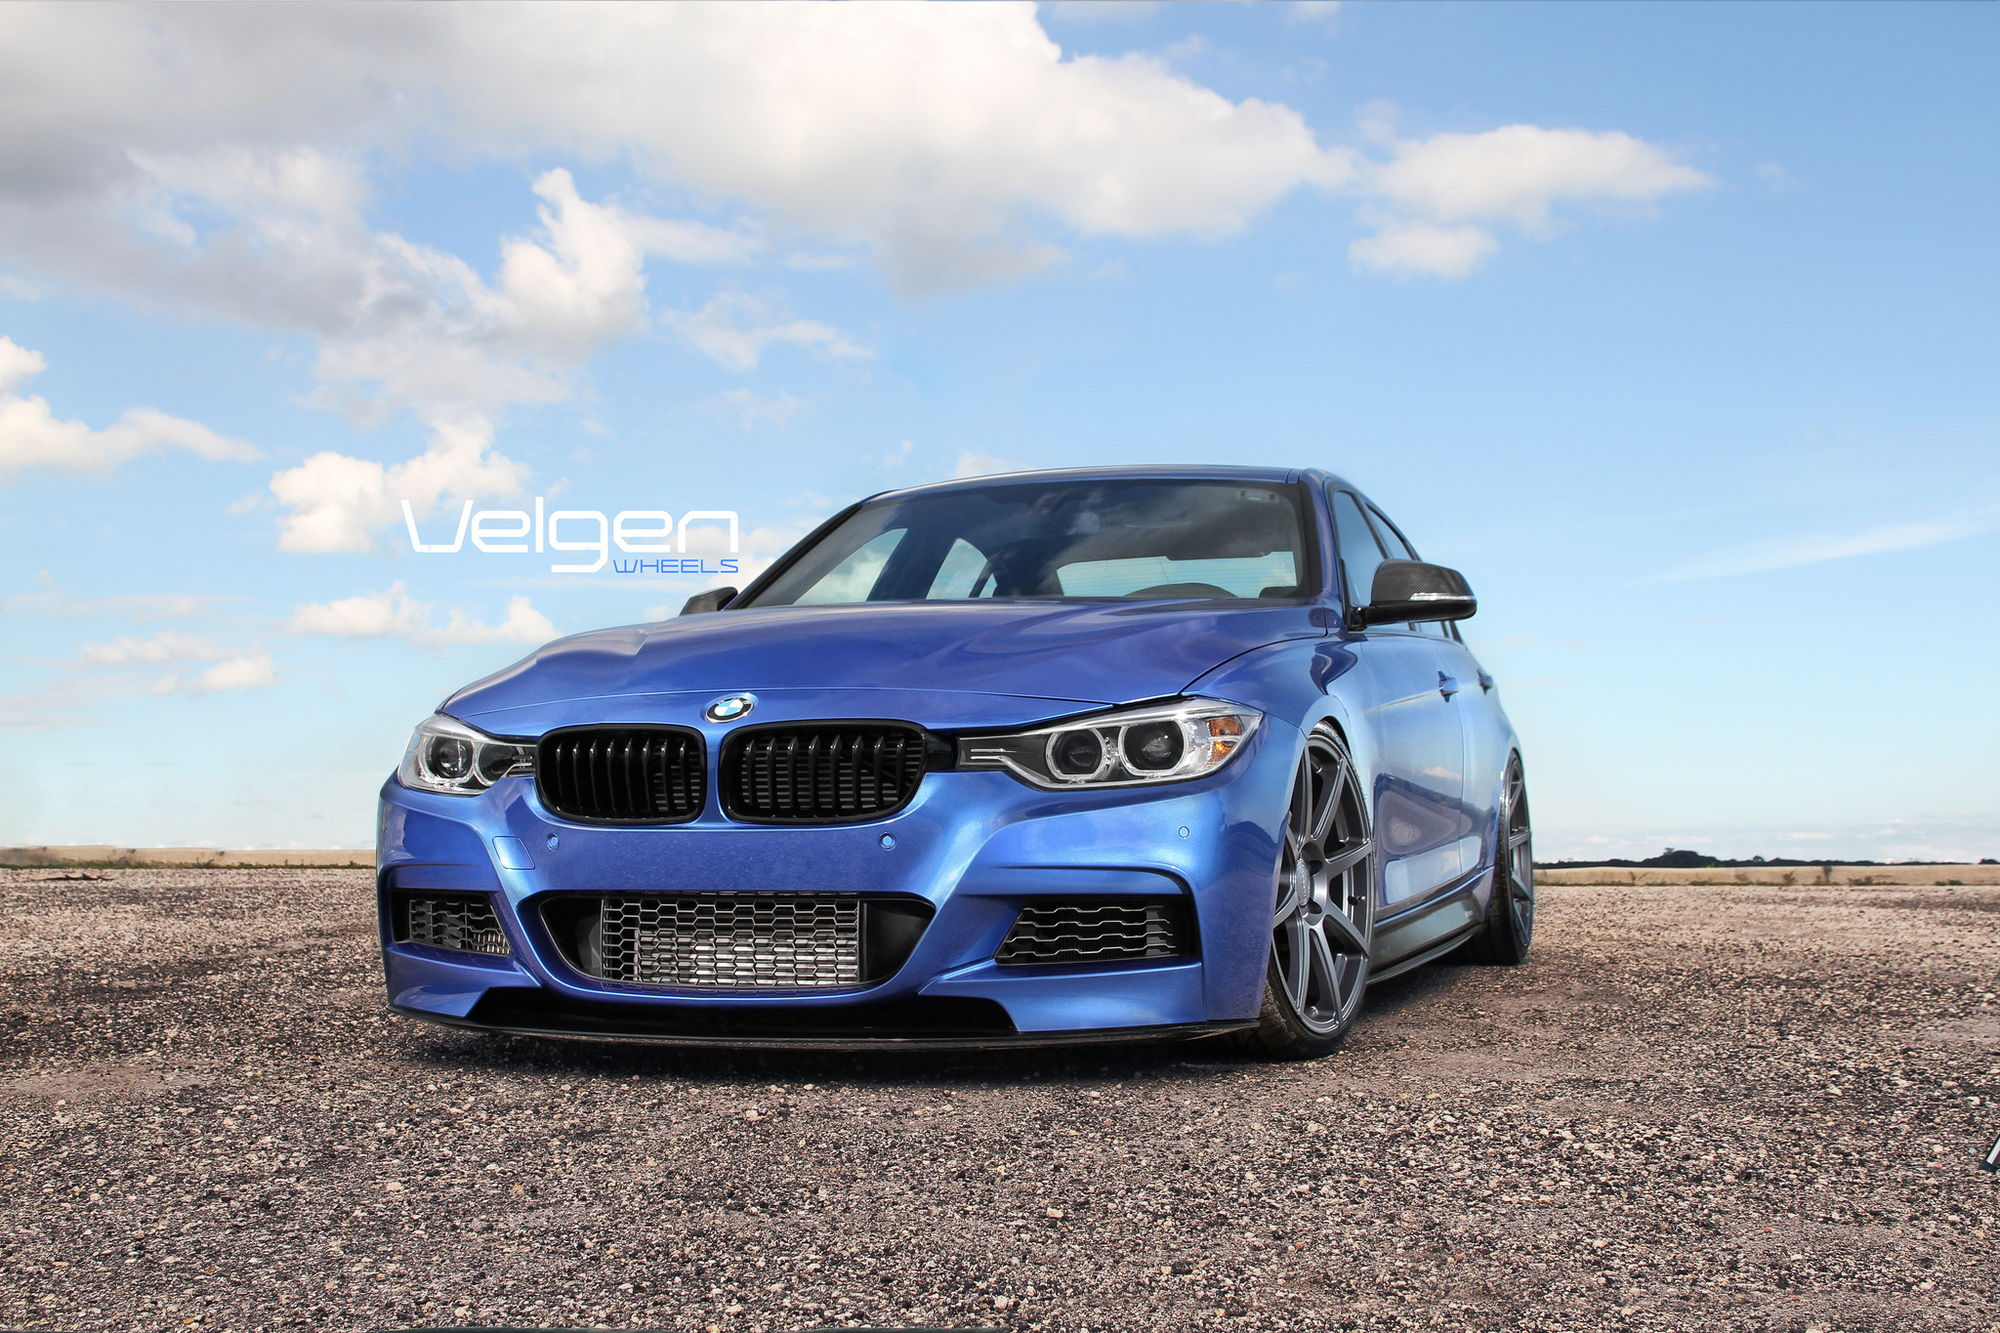 bmw f30 335i on velgen wheels vmb8. Black Bedroom Furniture Sets. Home Design Ideas